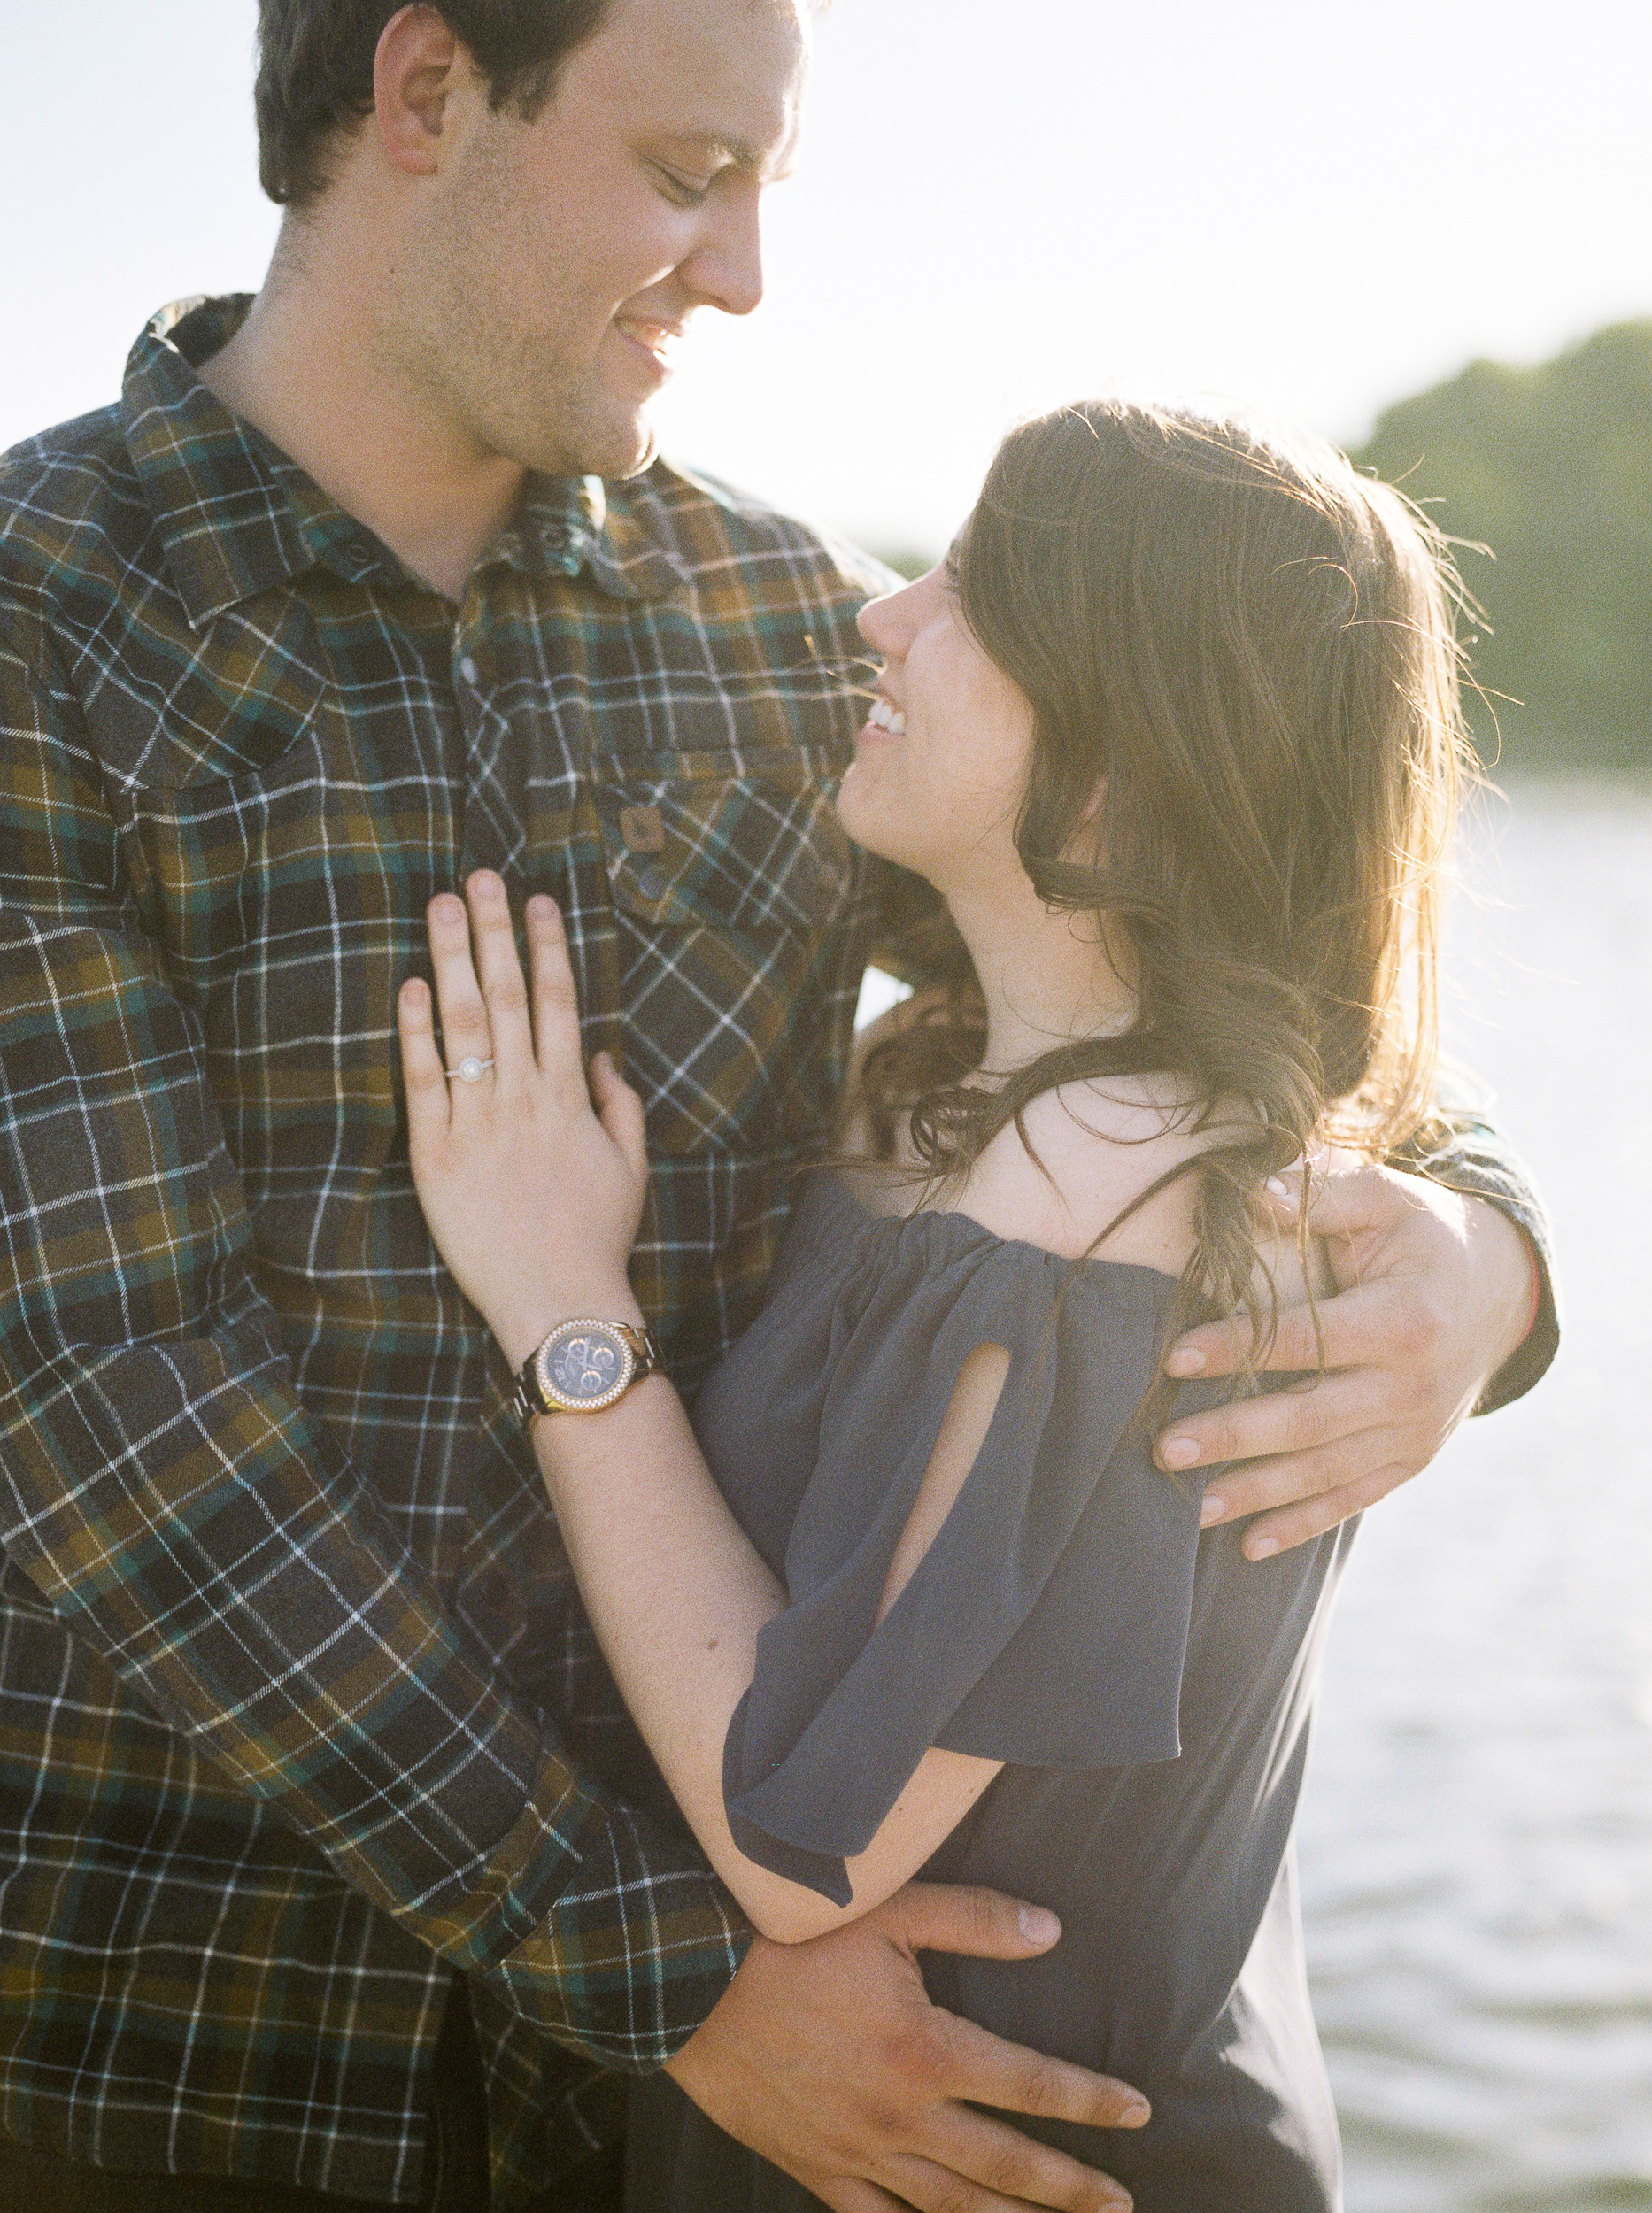 Canadian Film Photographer - Summertime Engagement Session - Engagement Session Ideas - What To Wear To An Engagement Session - Reasons to do an engagement session - Light & Airy Photography - Canadian Wedding Photographer - Winnipeg Wedding Photogr…